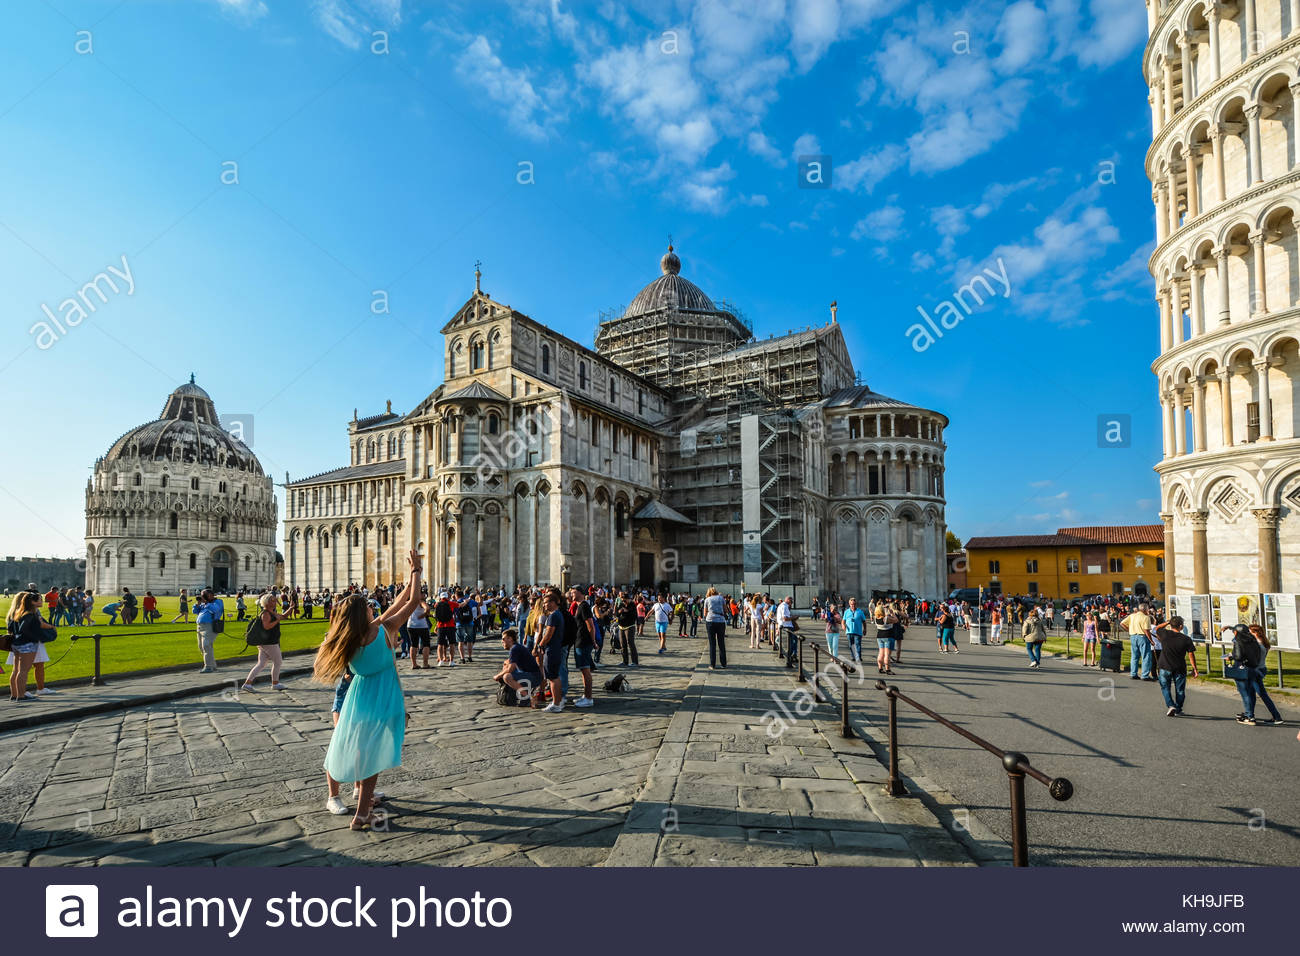 A girl gestures in a dancelike way as she poses in front of the Leaning Tower of Pisa on the PIazza Dei Miracoli Stock Photo